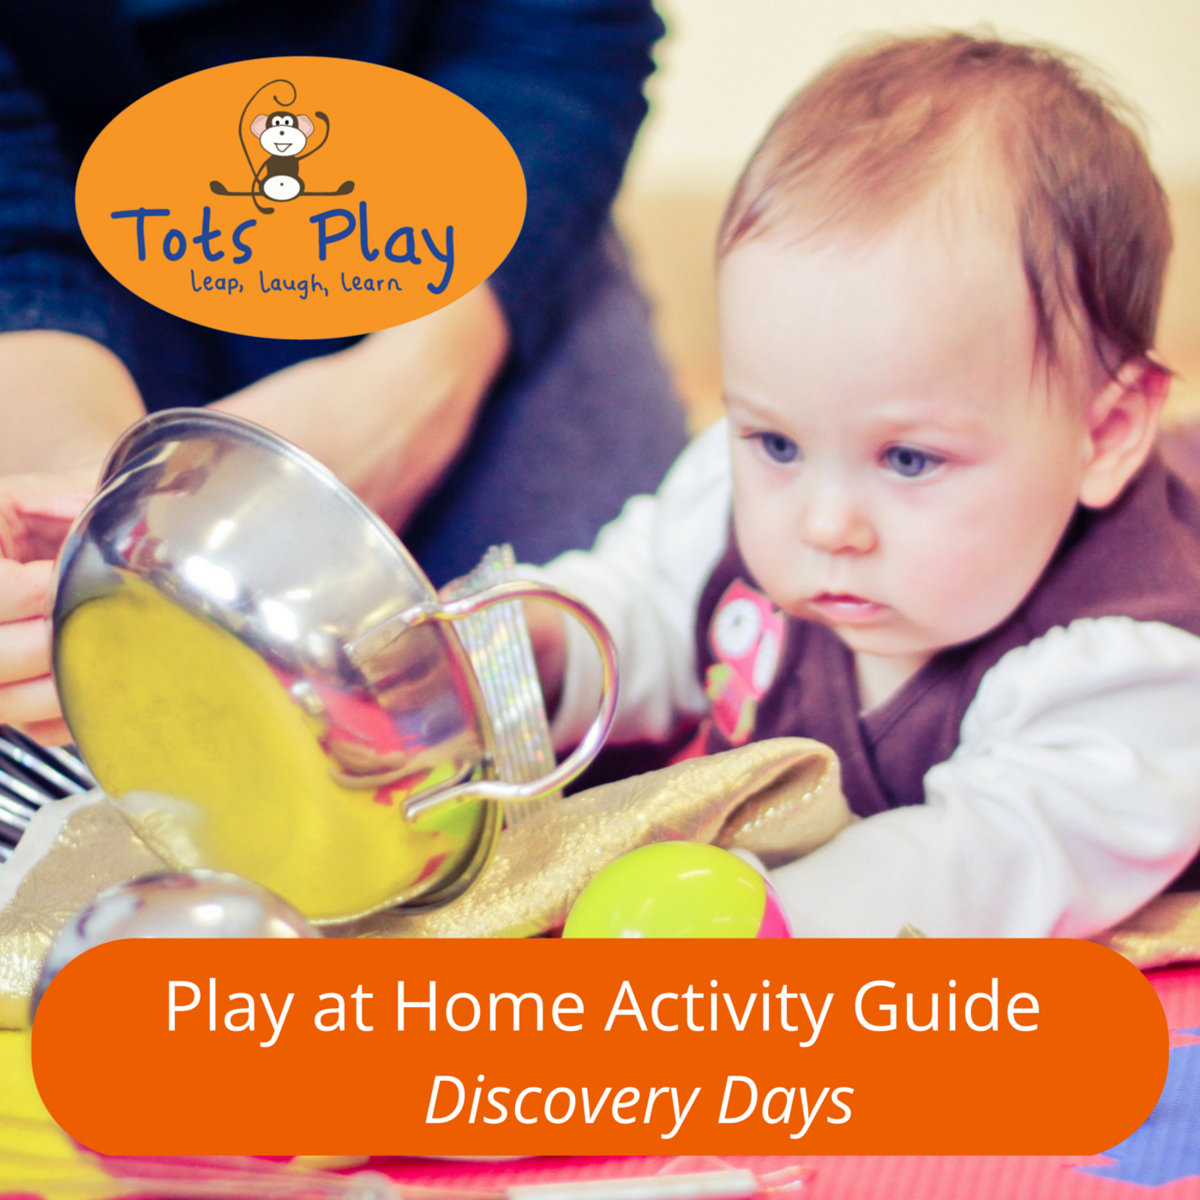 Tots Play Welcome Song Tots Play Uk Ltd